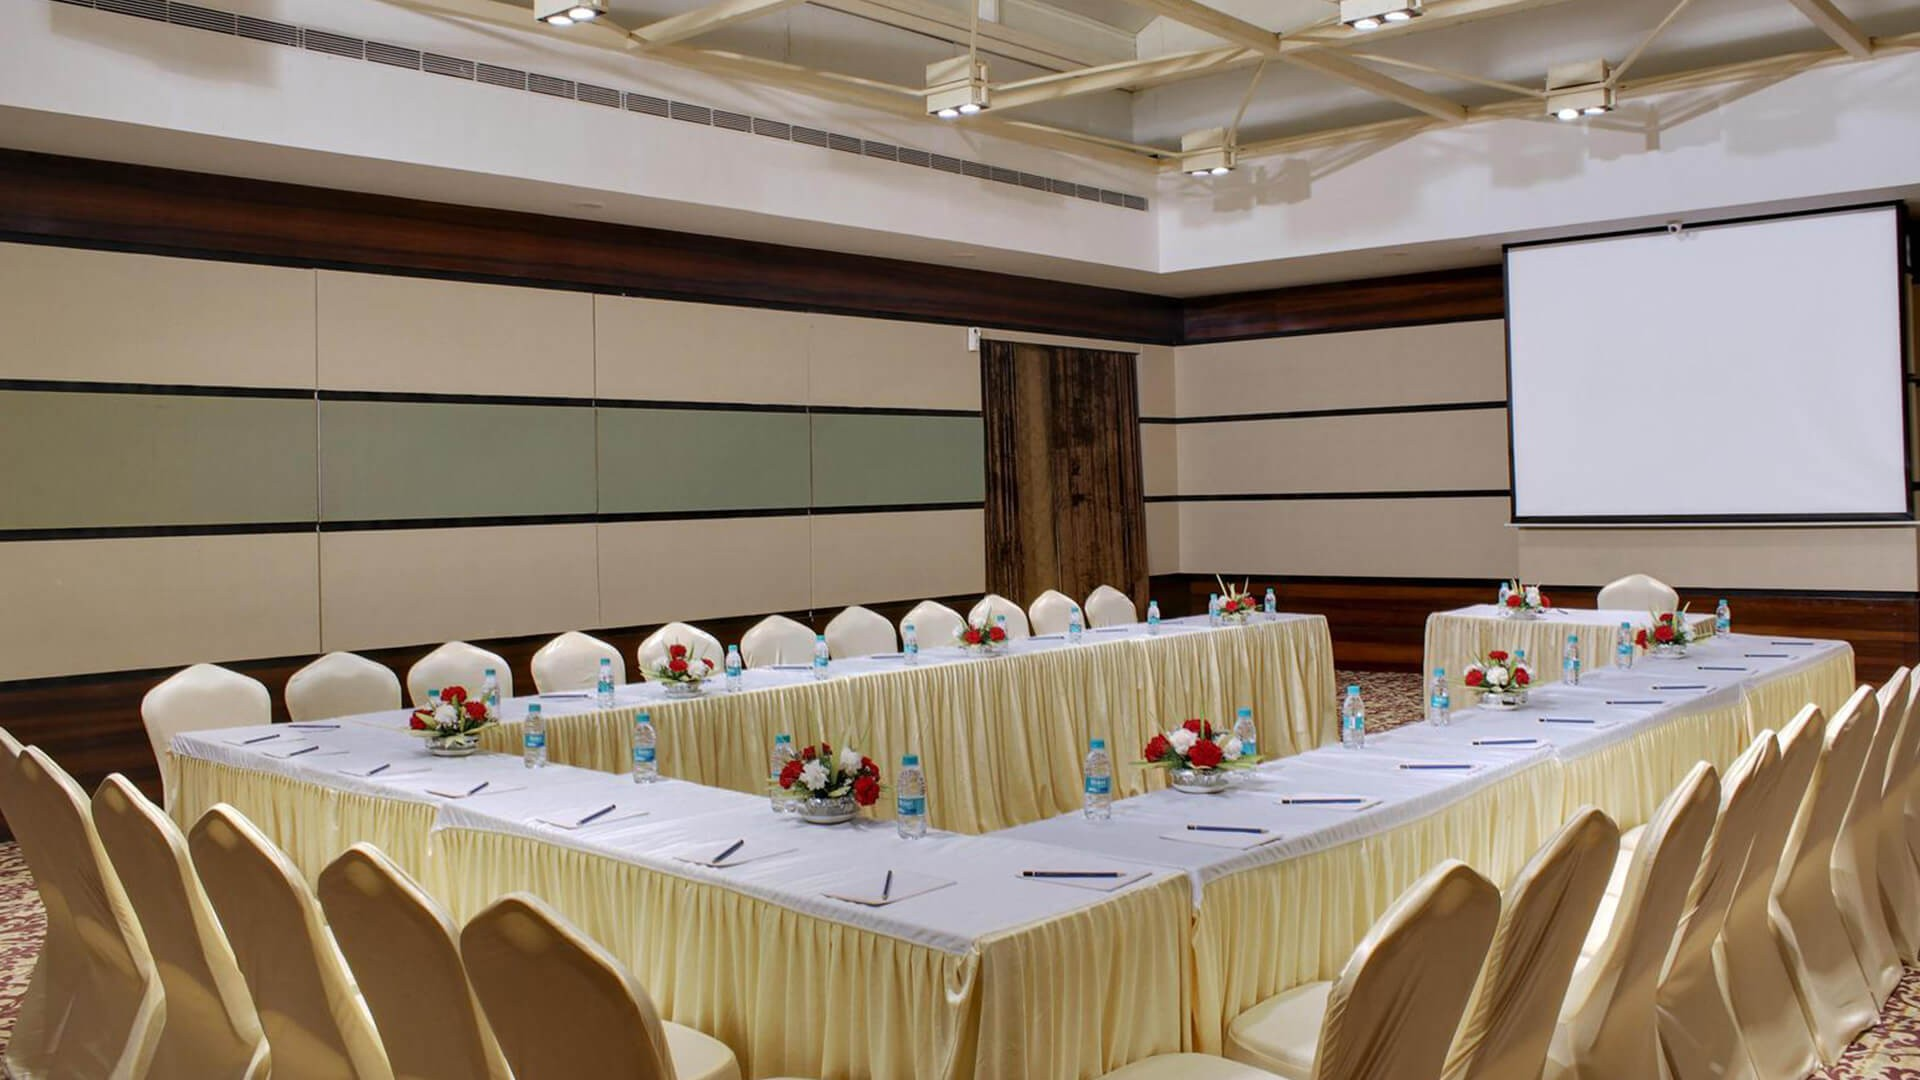 Conference in Mumbai central, Banquets in Mumbai central, Conference rooms in South Mumbai, Banquet halls in Mumbai central, The Sahil Hotel